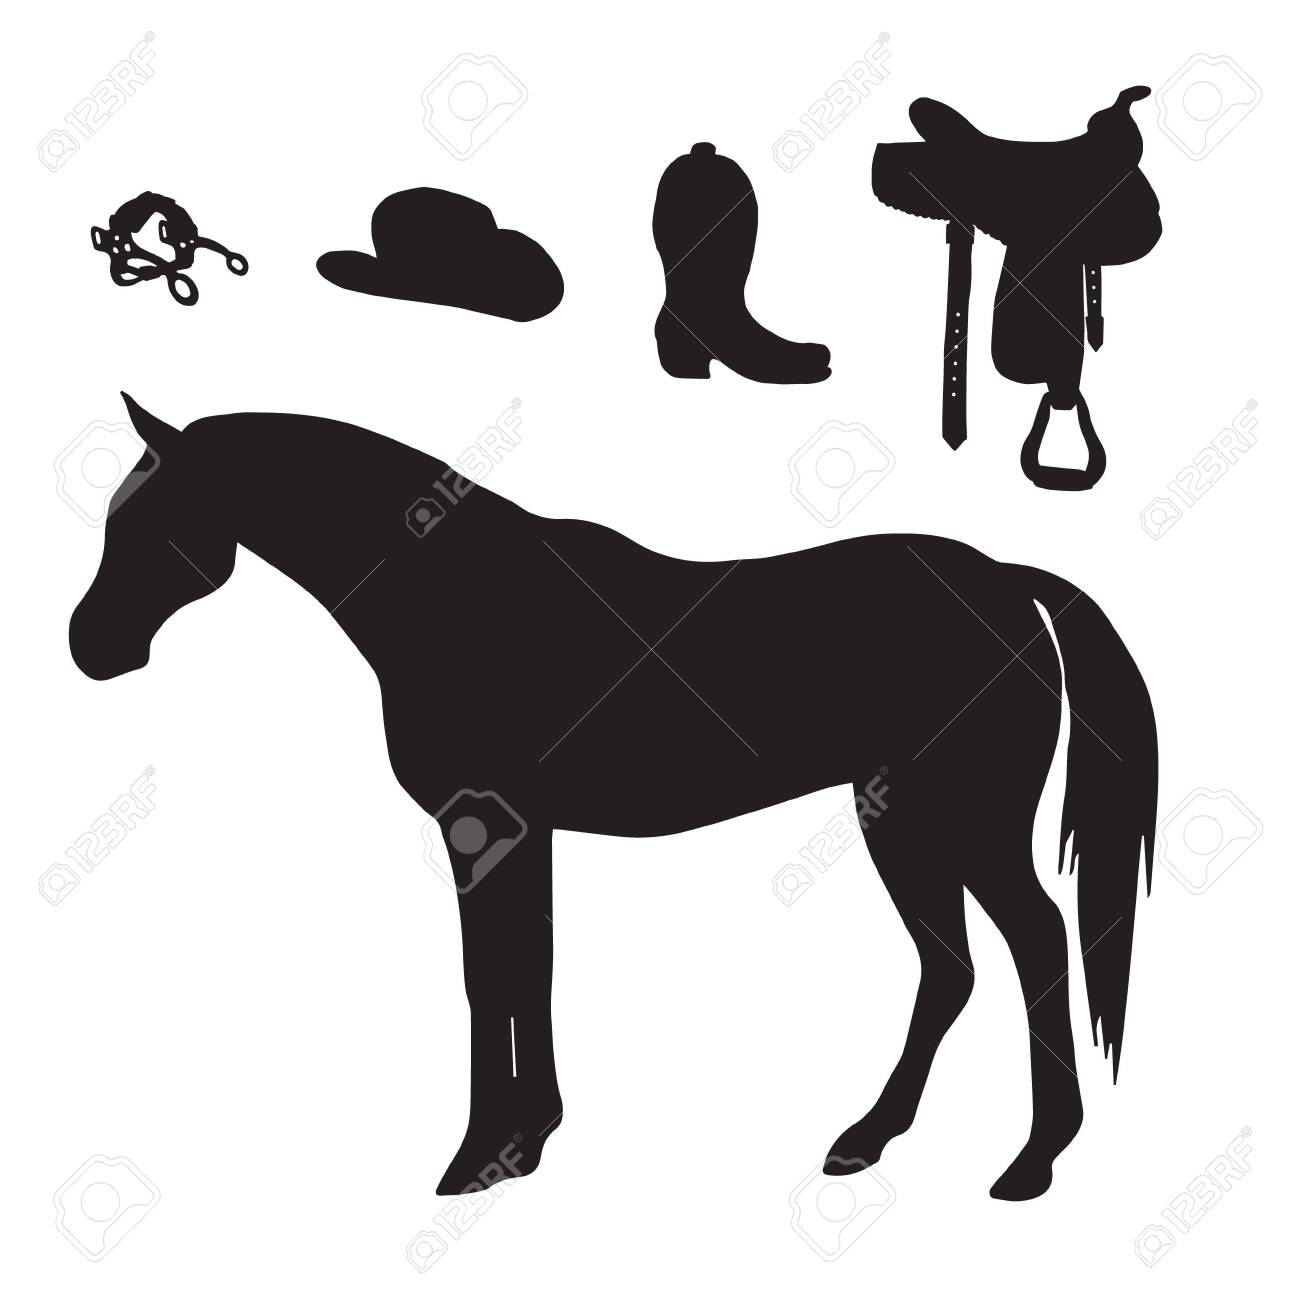 Black Horse And Riding Equestrian Cowboy Western Equipment Silhouette Royalty Free Cliparts Vectors And Stock Illustration Image 144059667